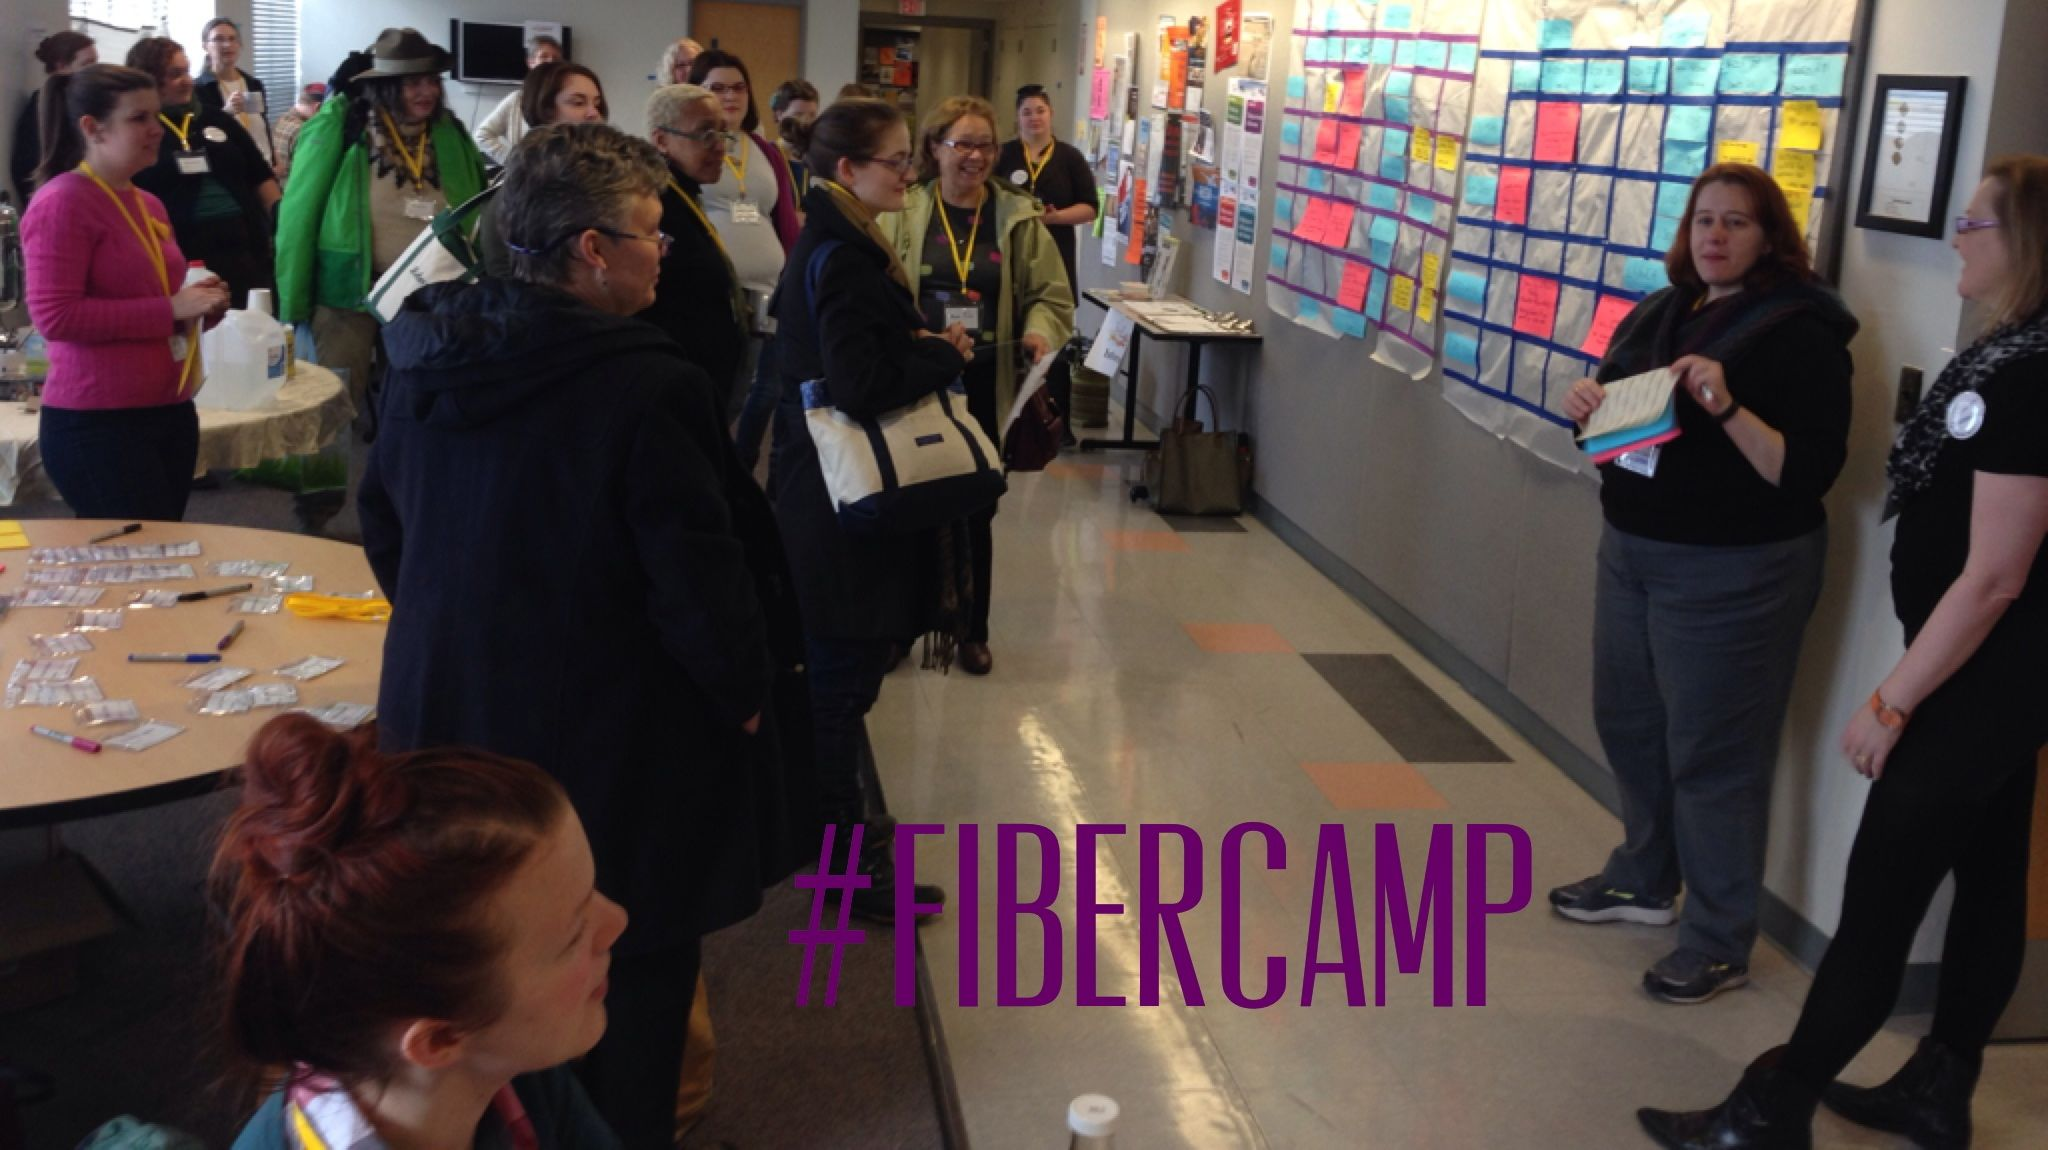 FiberCamp Boston: The Smorgasbord of Learning